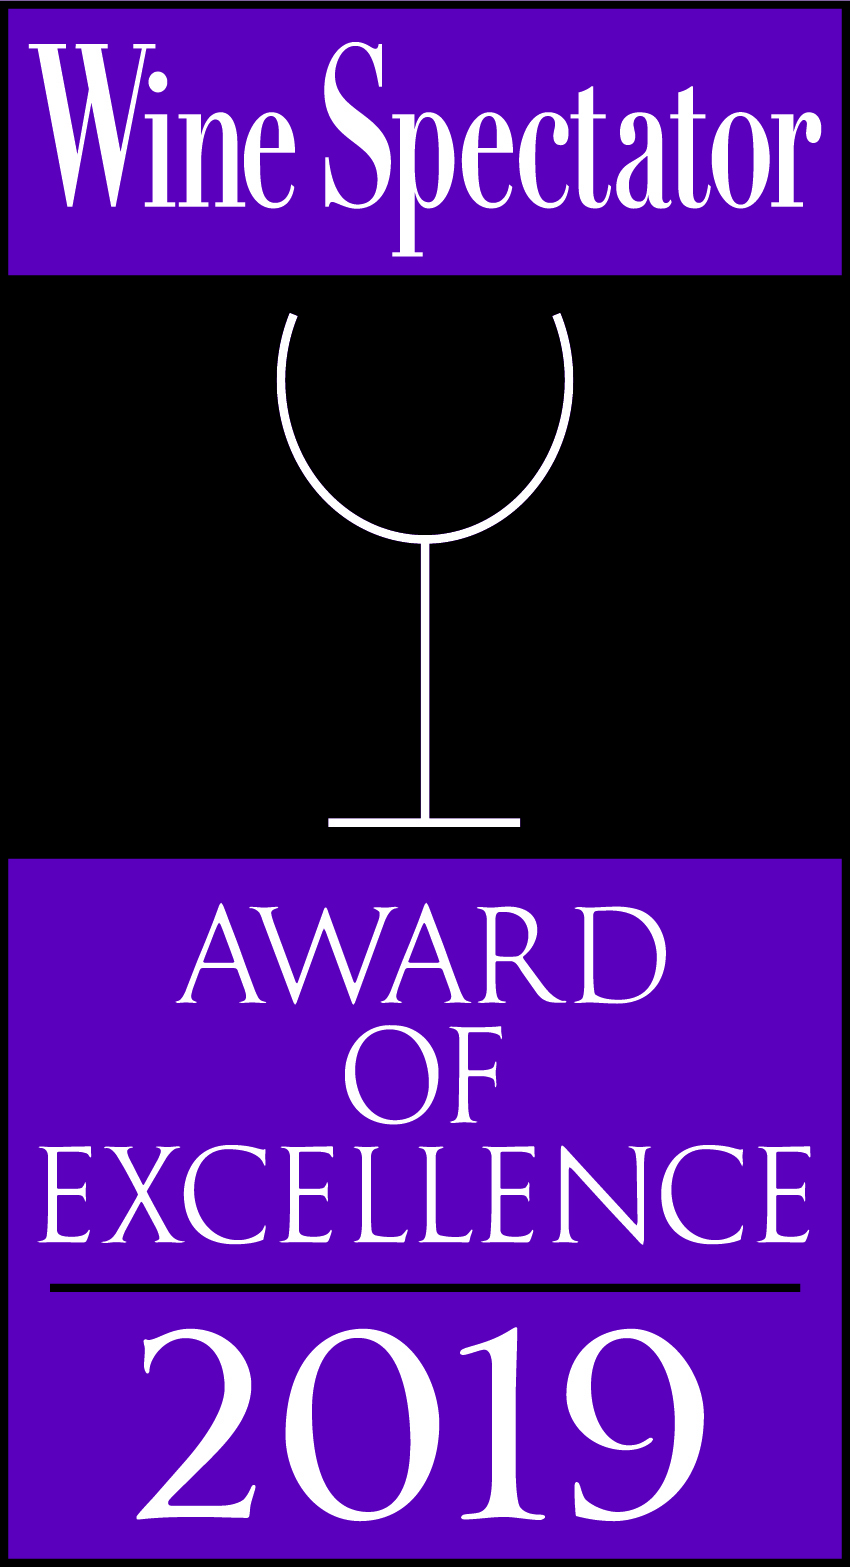 2019 Award of Excellence